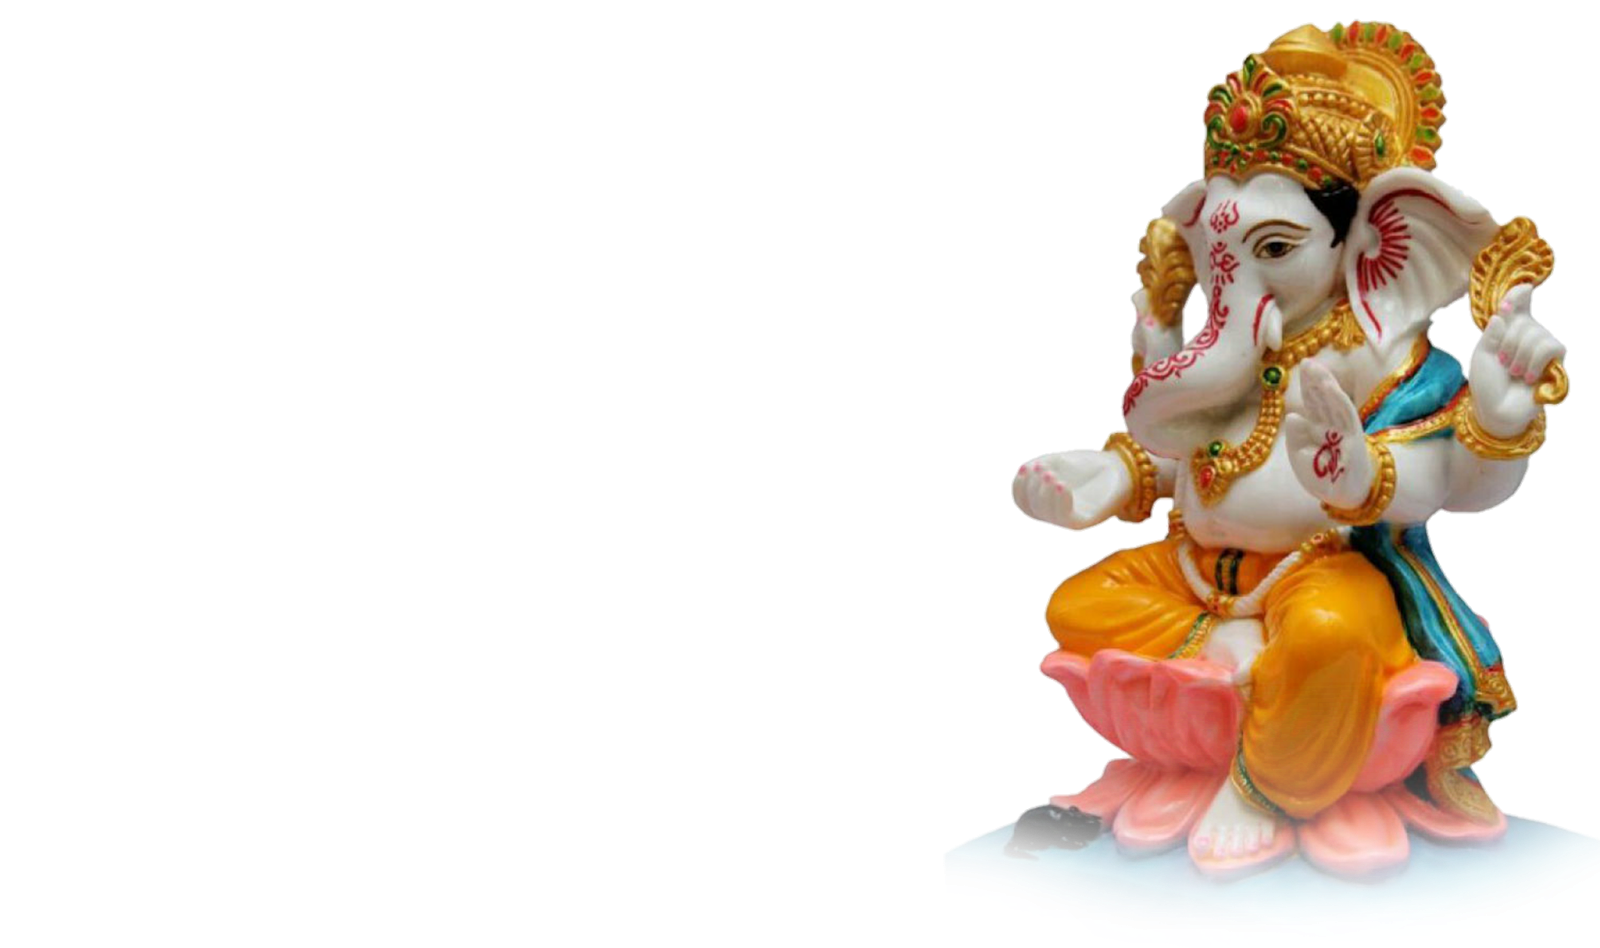 Ganesha Png Images Free Download: Ganesh Chaturthi Special Editing In PicsArt Ganpati Photo